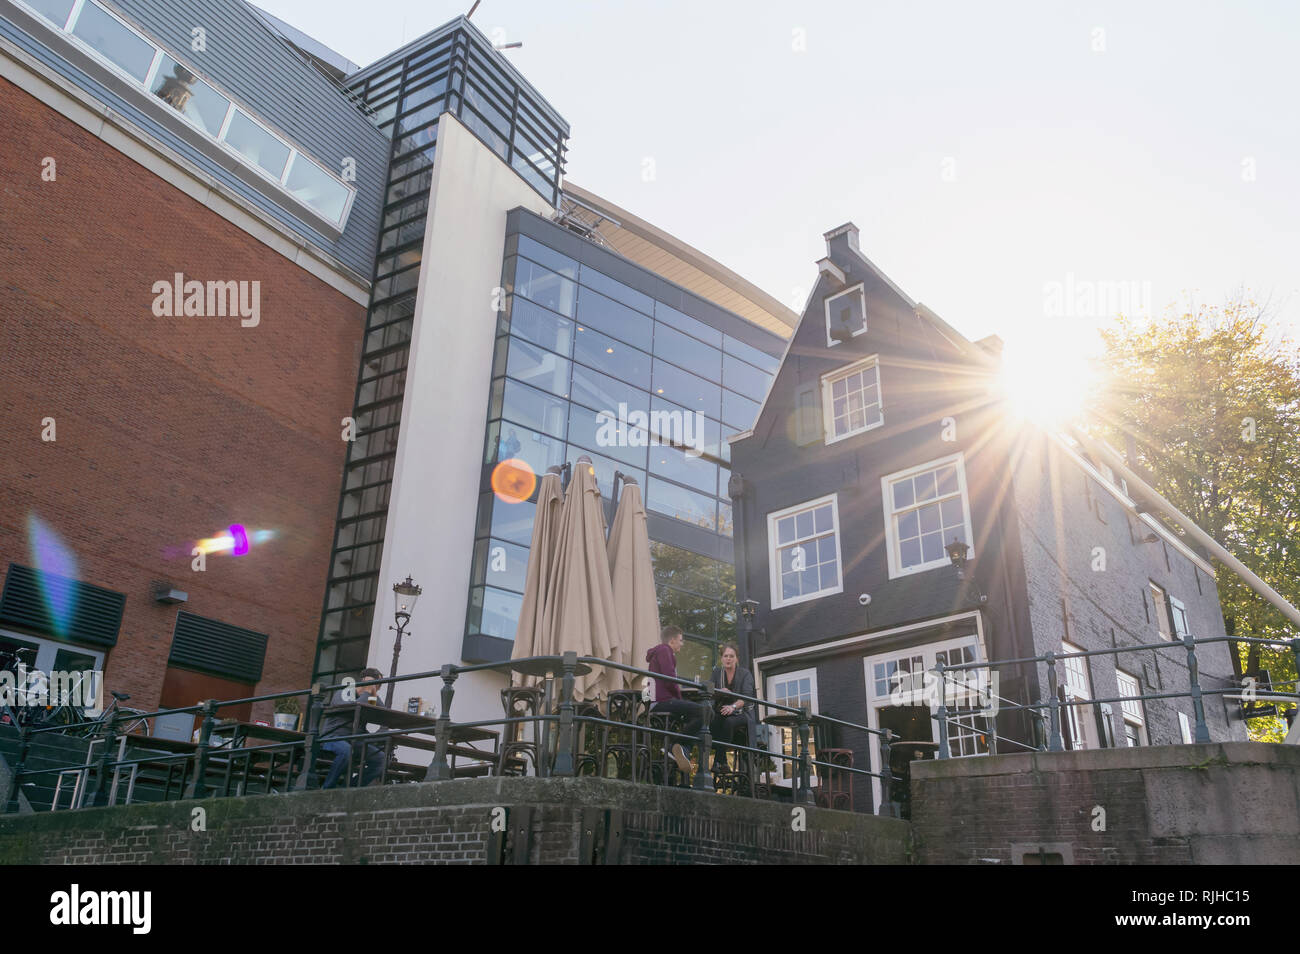 Amsterdam, The Netherlands, October 10, 2018: view from below on people at cafes table and warm sun rays shining through the roof - Stock Image